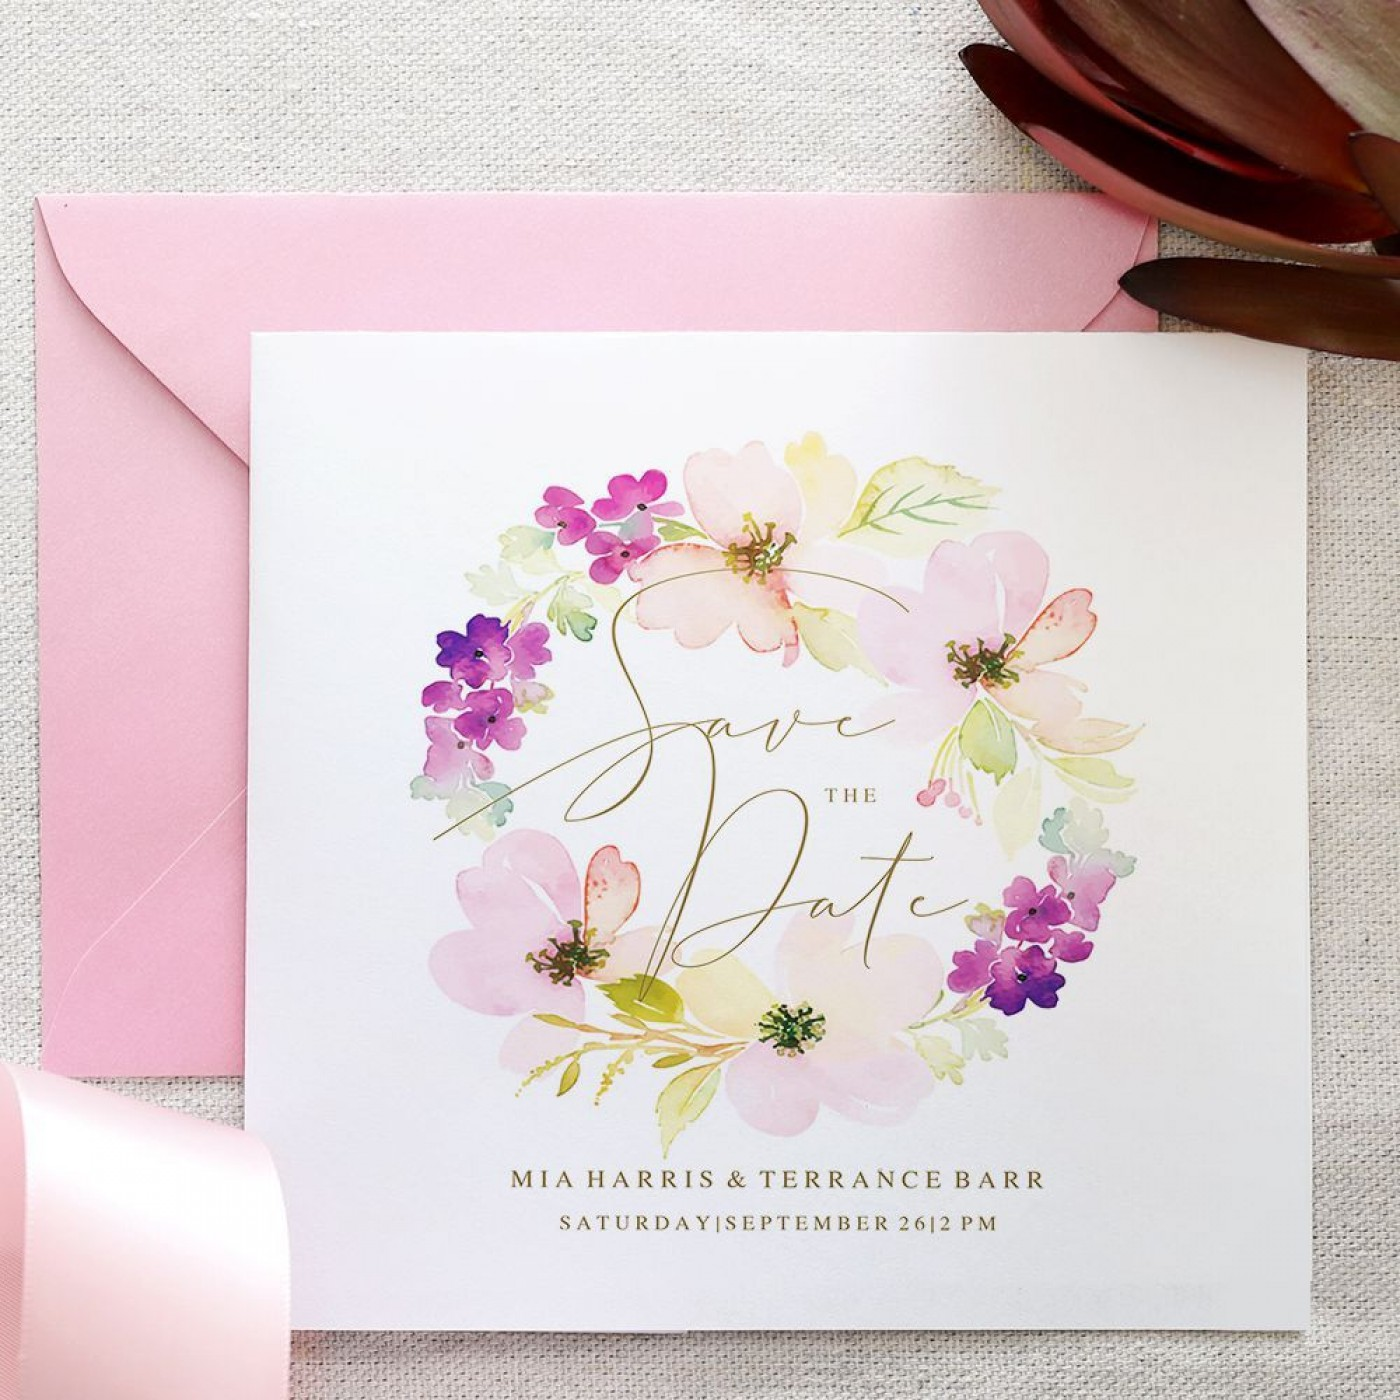 006 Excellent Free Save The Date Birthday Postcard Template High Def 1400